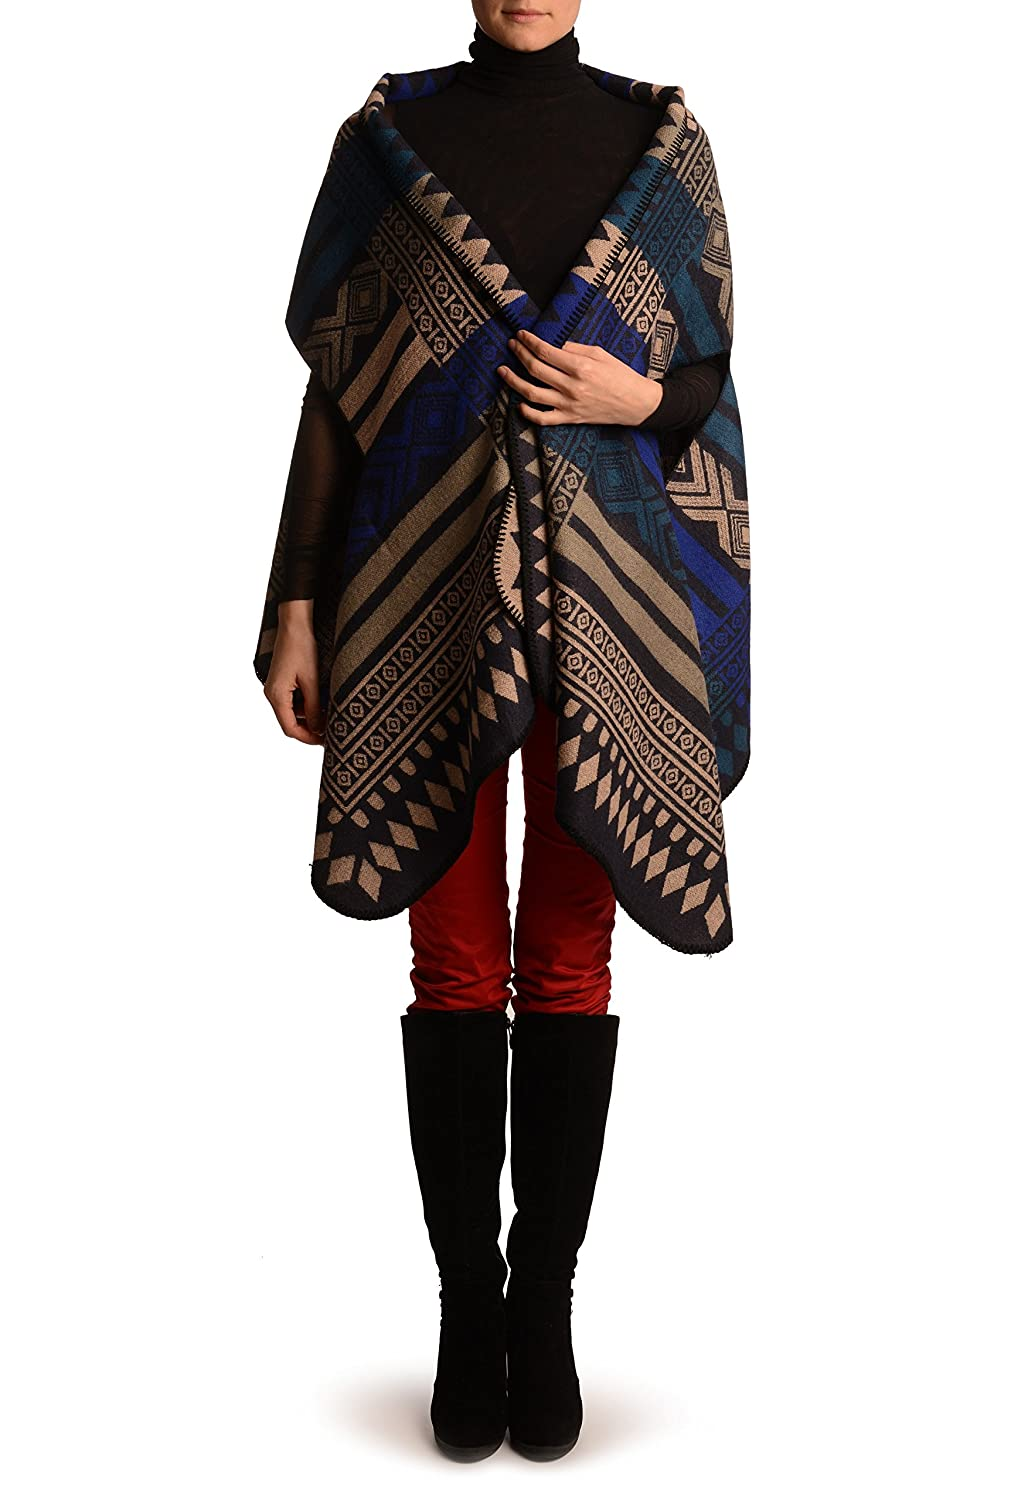 Beige, Blue & Teal Blue Aztec On Black Blanket Wrap (Poncho) - Poncho PC003495